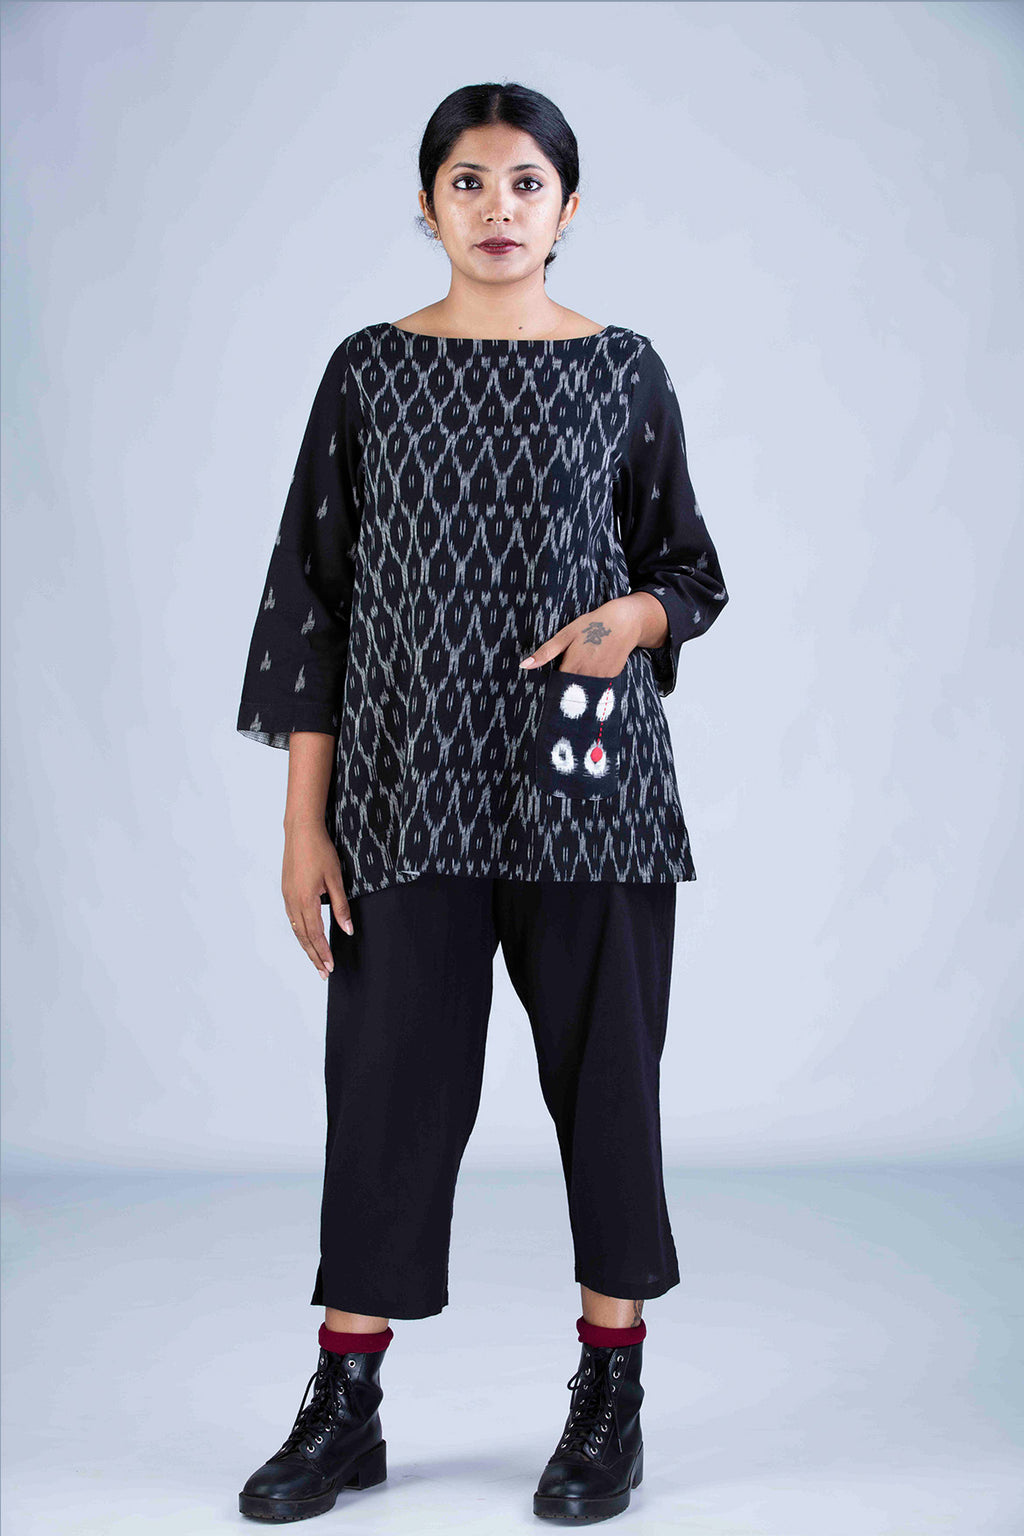 Black Ikat Top - PARI - Upasana Design Studio